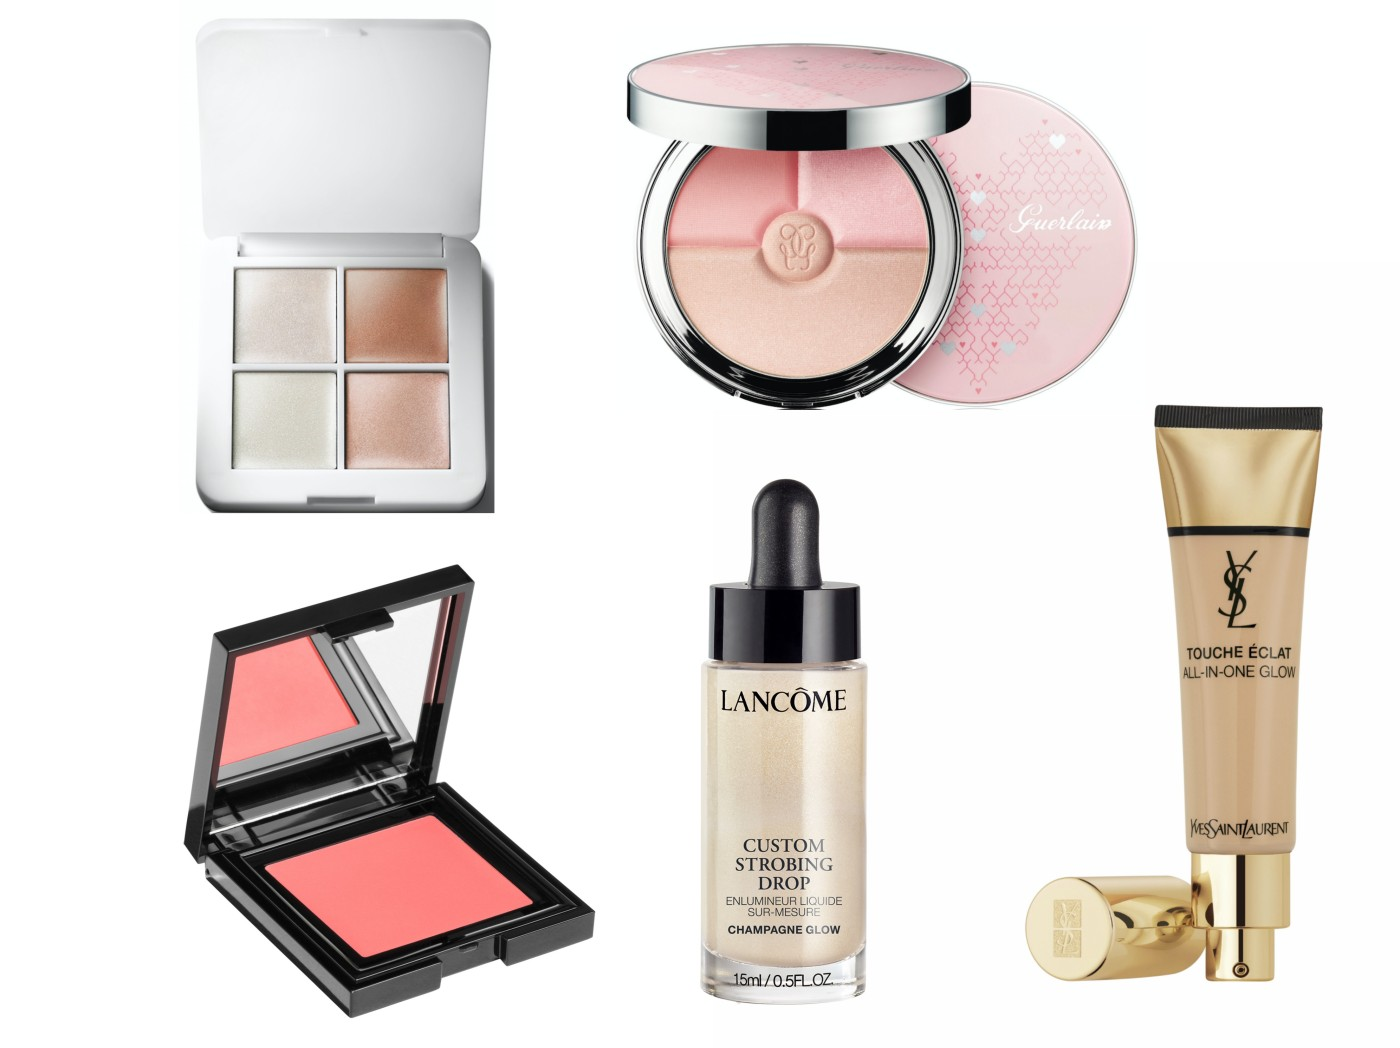 guerlain météorites ysl touche éclat custom strobing drop lancôme & other stories rms beauty